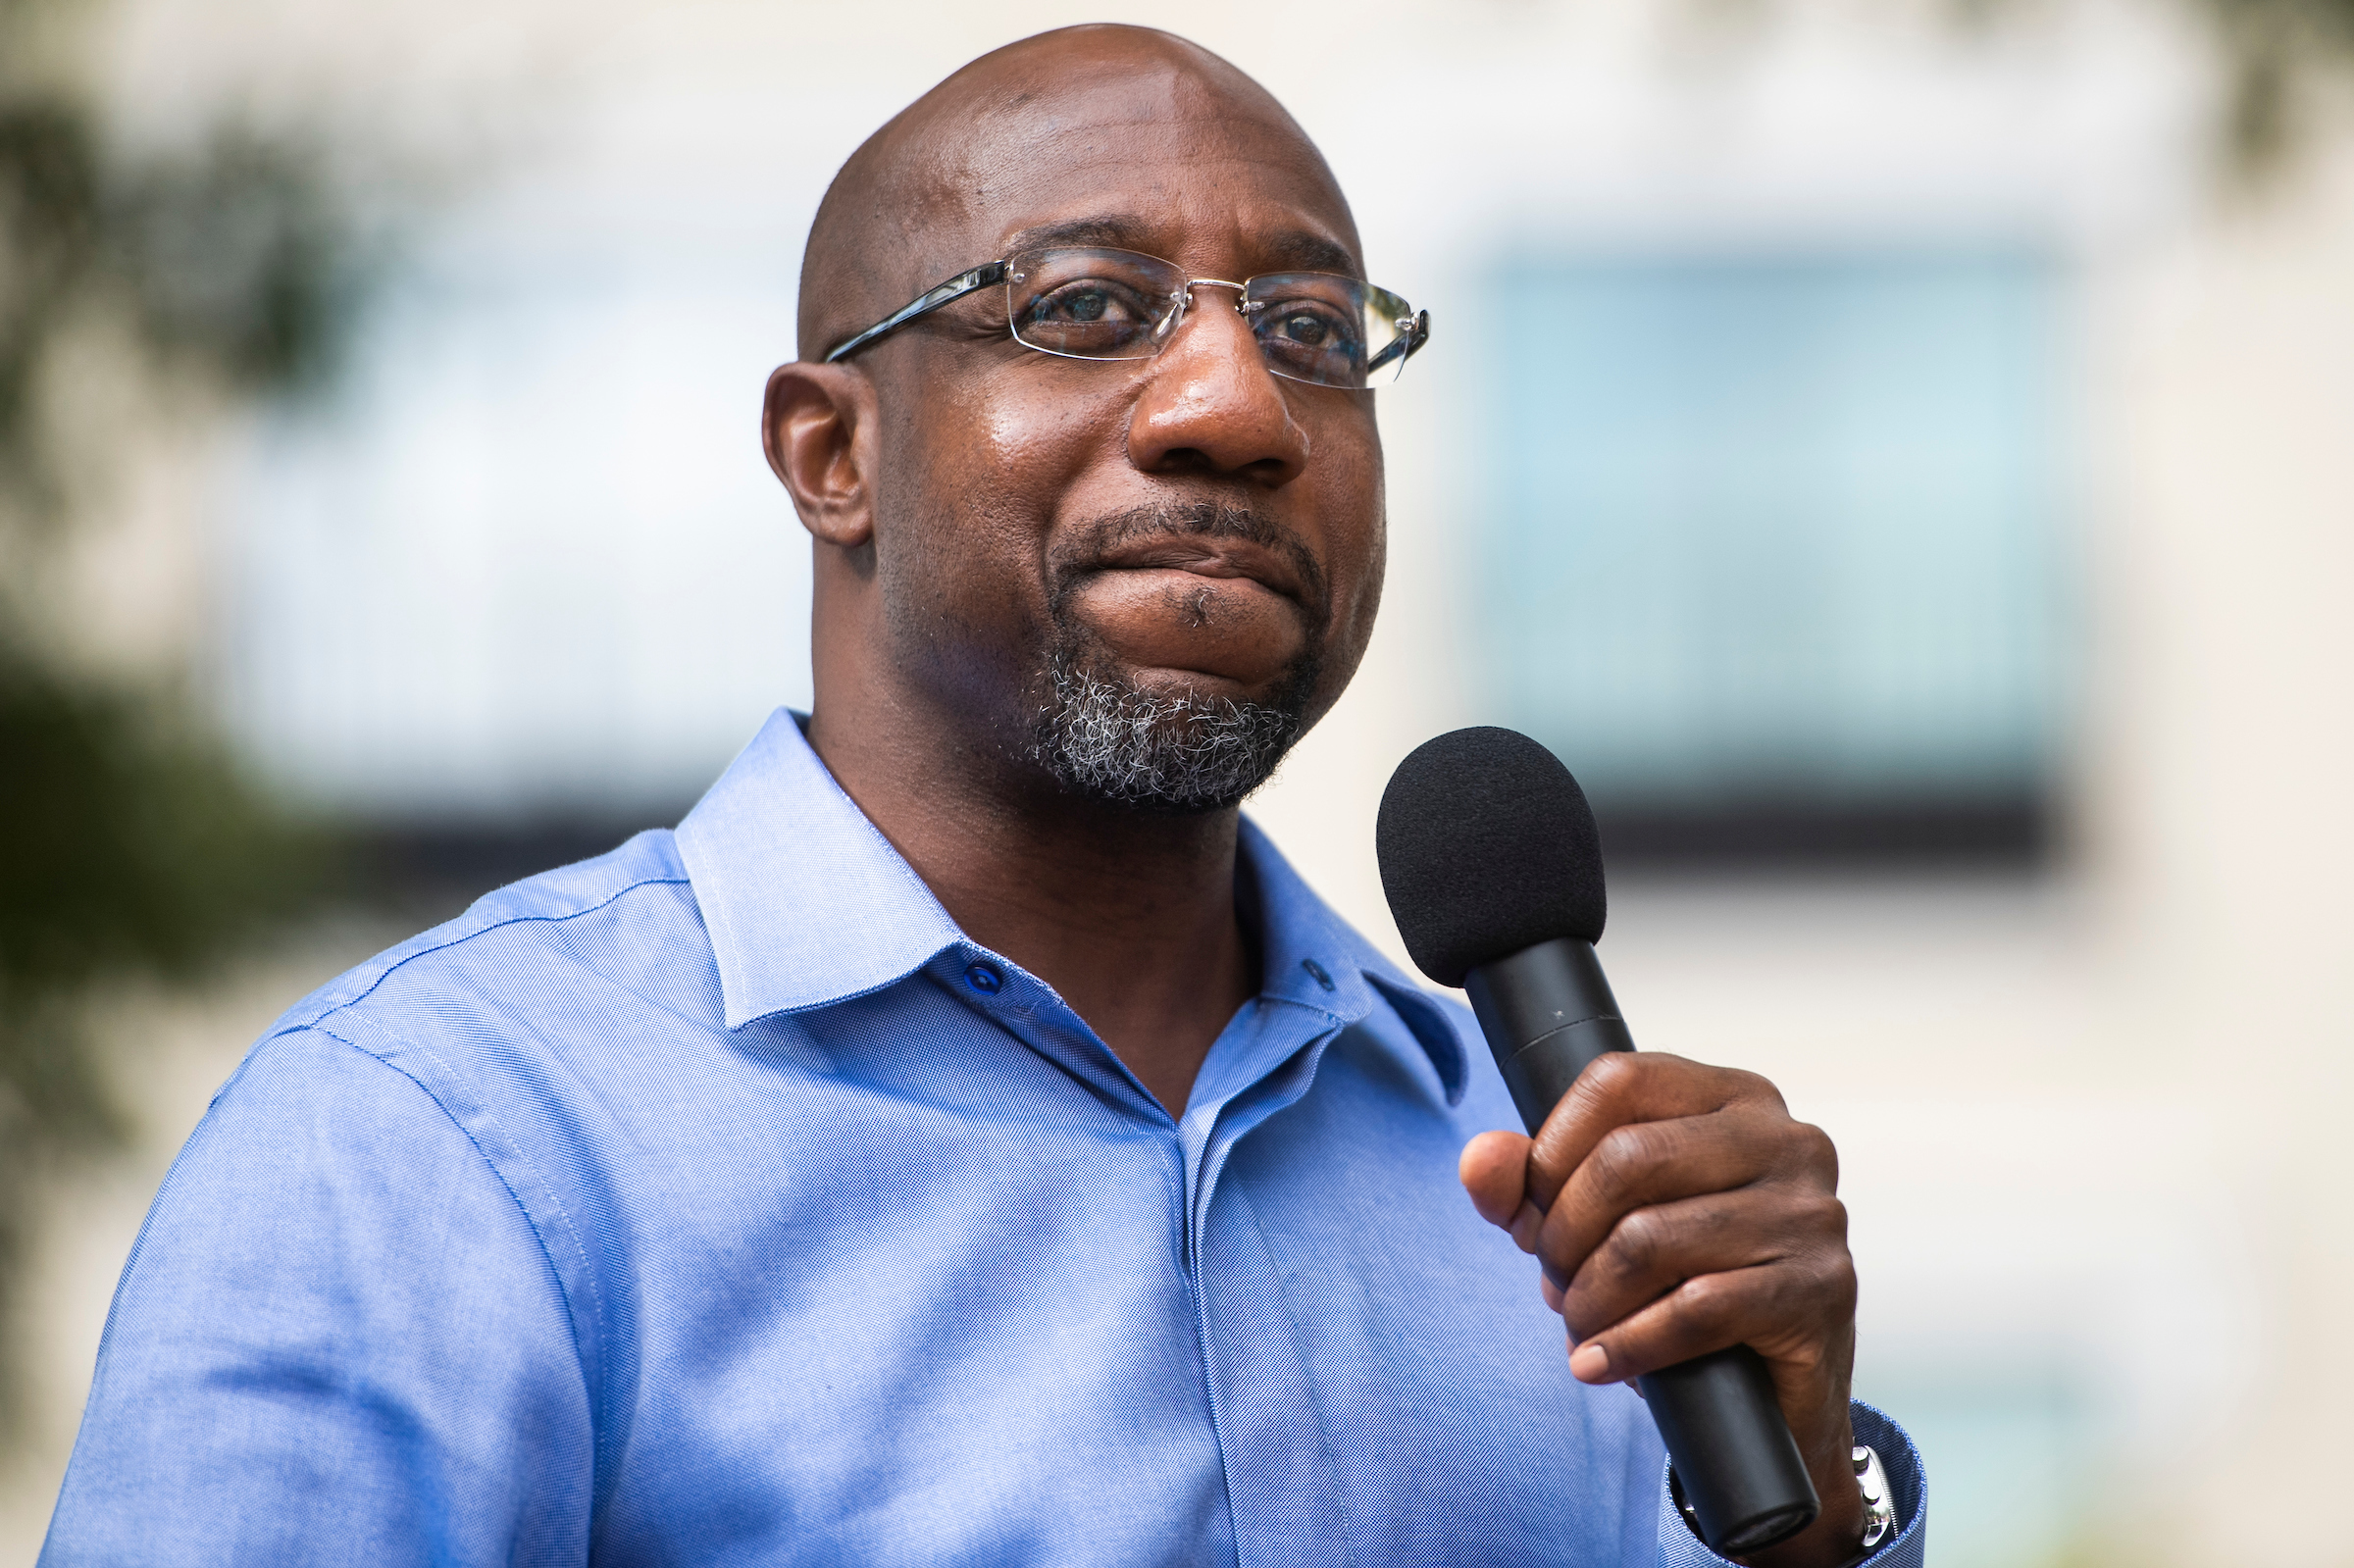 Raphael Warnock, shown here on the campaign trail last year, returns to Georgia most weekends to deliver his sermons, peppered with mentions of his work in the Senate. (Tom Williams/CQ Roll Call file photo)